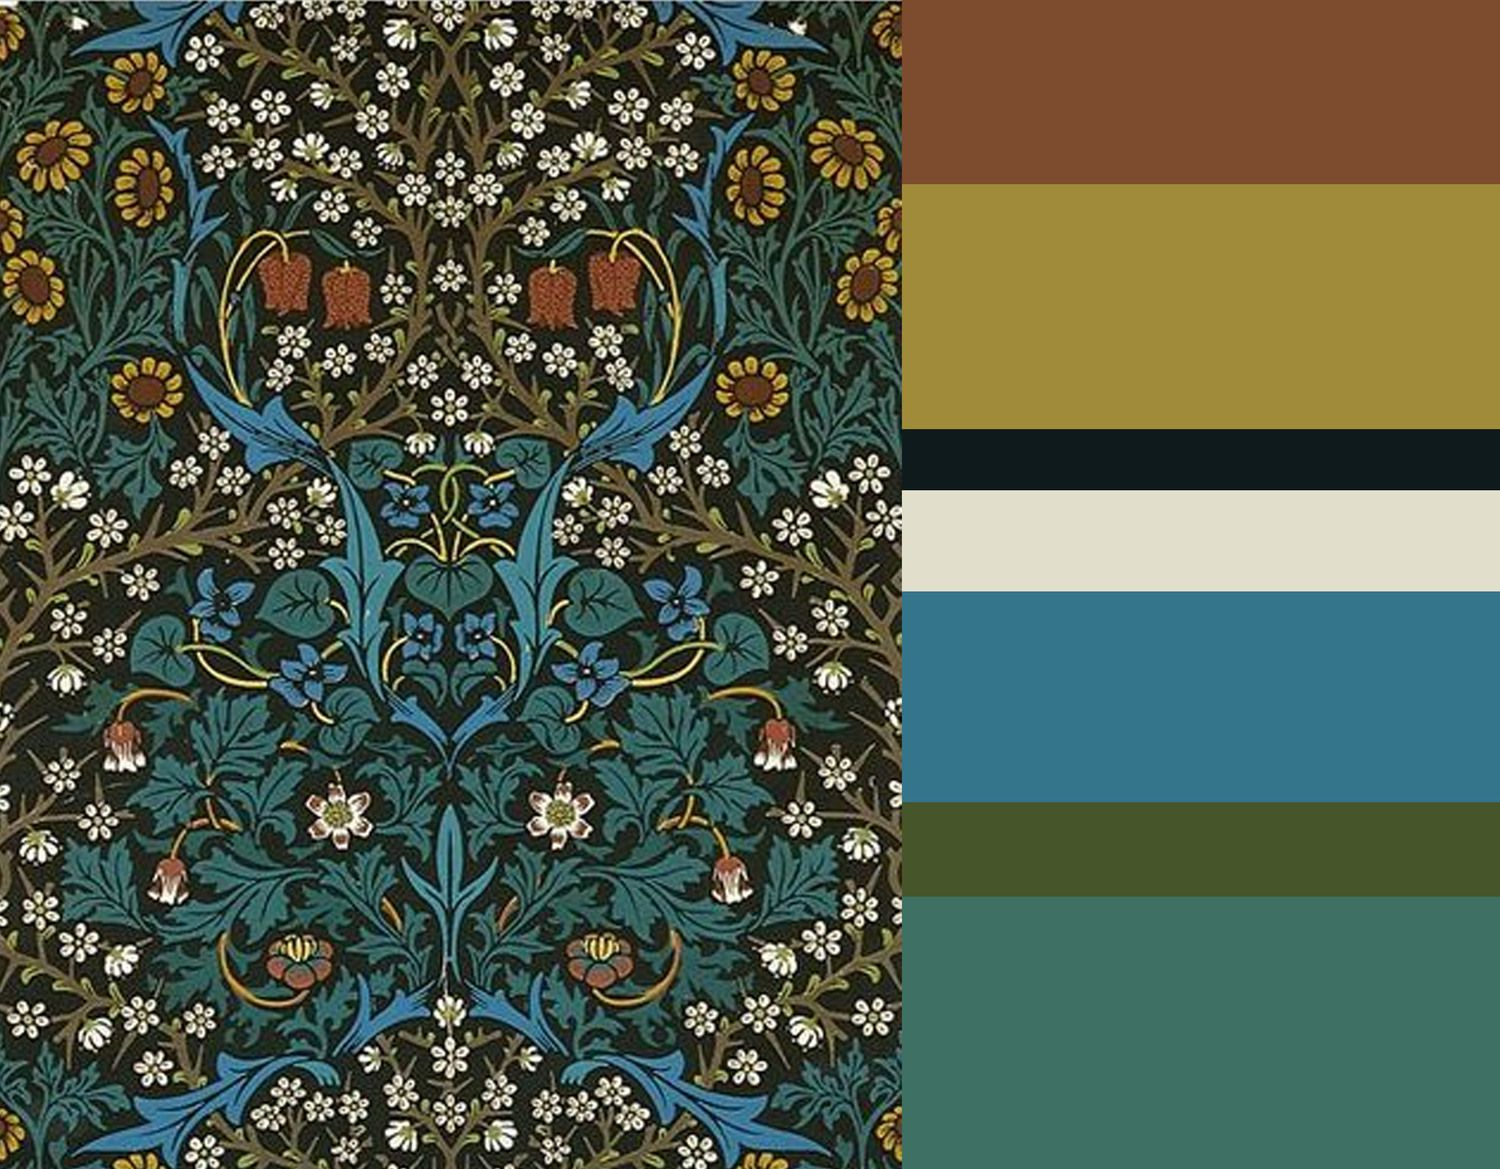 The Revival of William Morris Decorative Arts. William